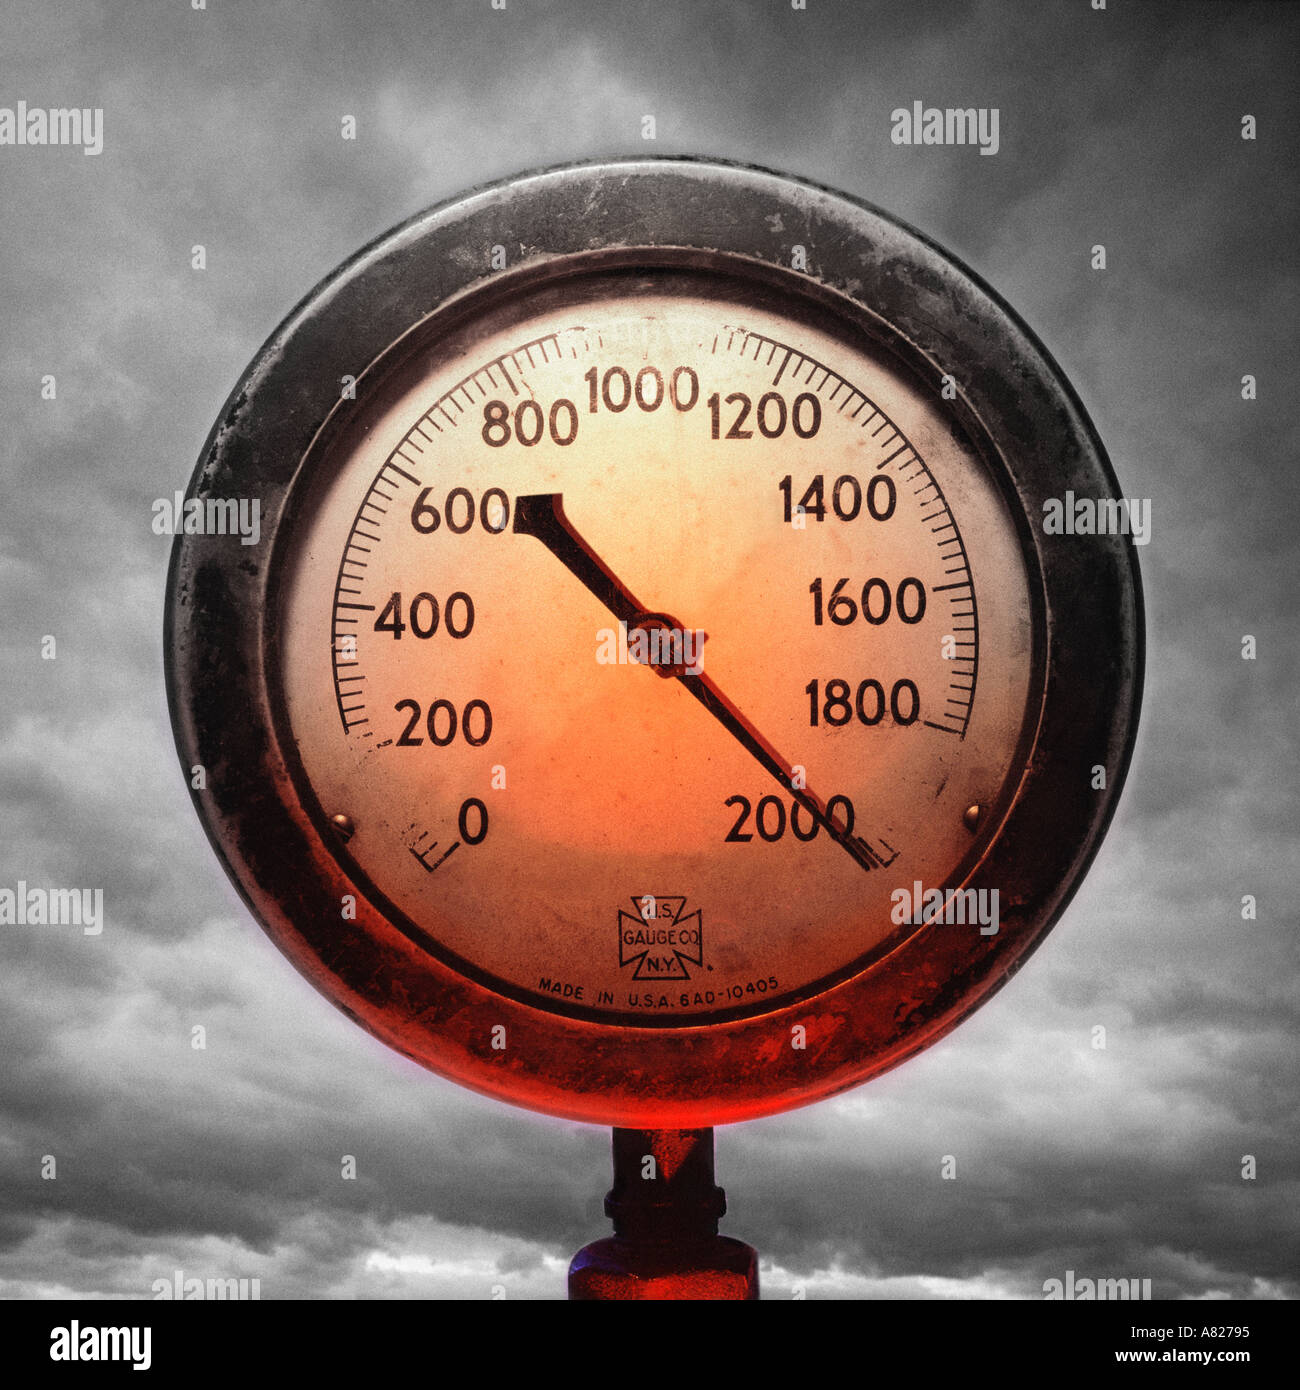 High Pressure Meter : Pressure gauge about to blow stock photo royalty free